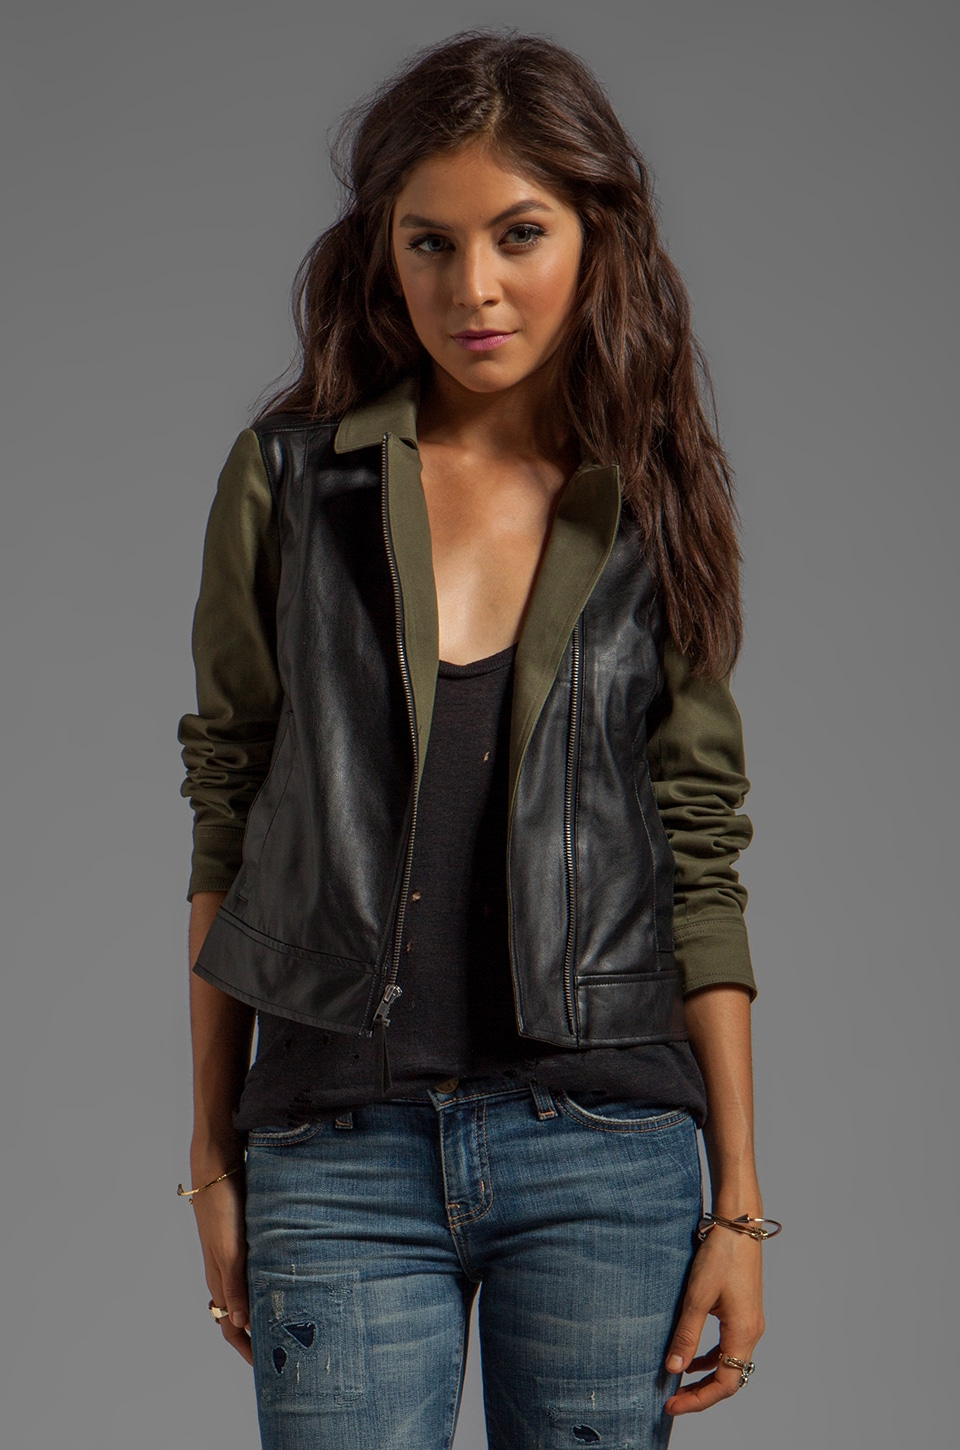 Ella Moss Ashwin Jacket in Army